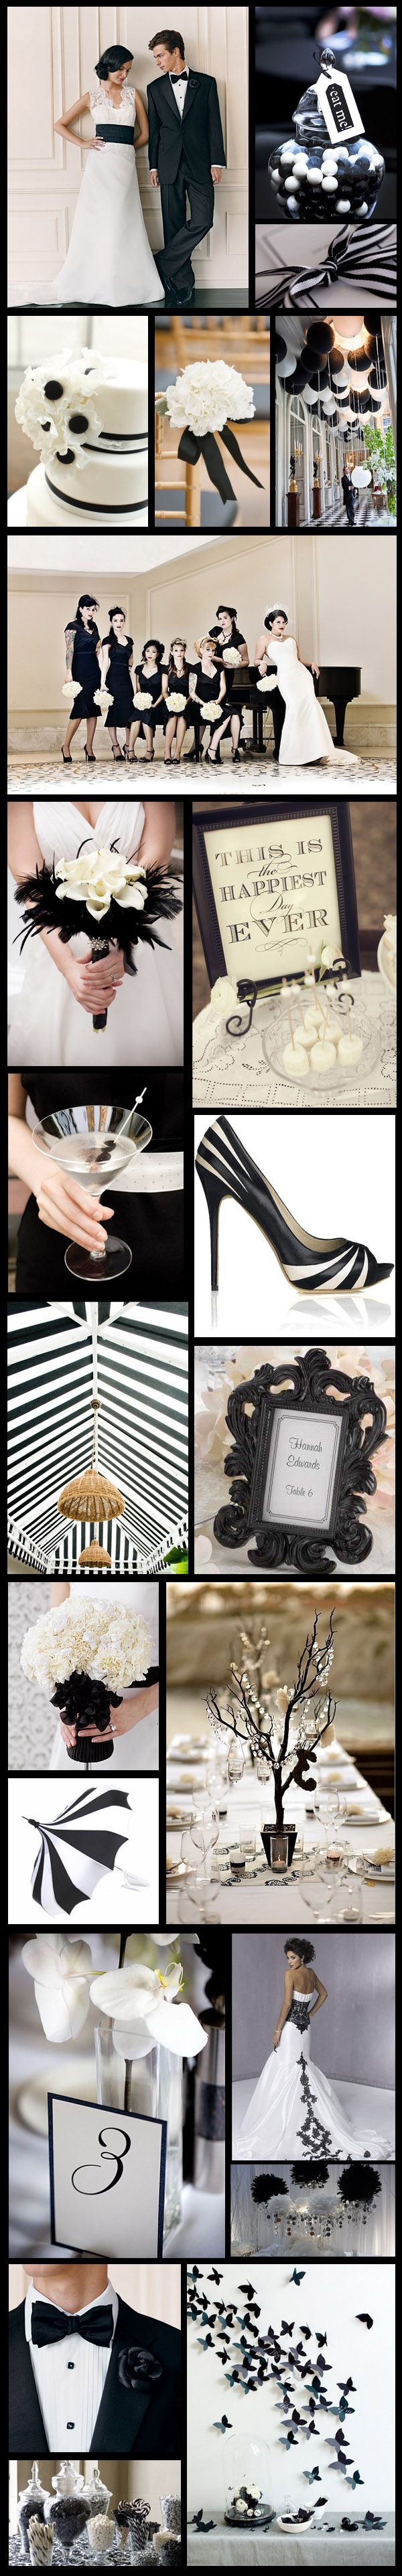 Black & White inspiration Board  Scroll down and check out the wedding dress with black lace detail. Beautiful!